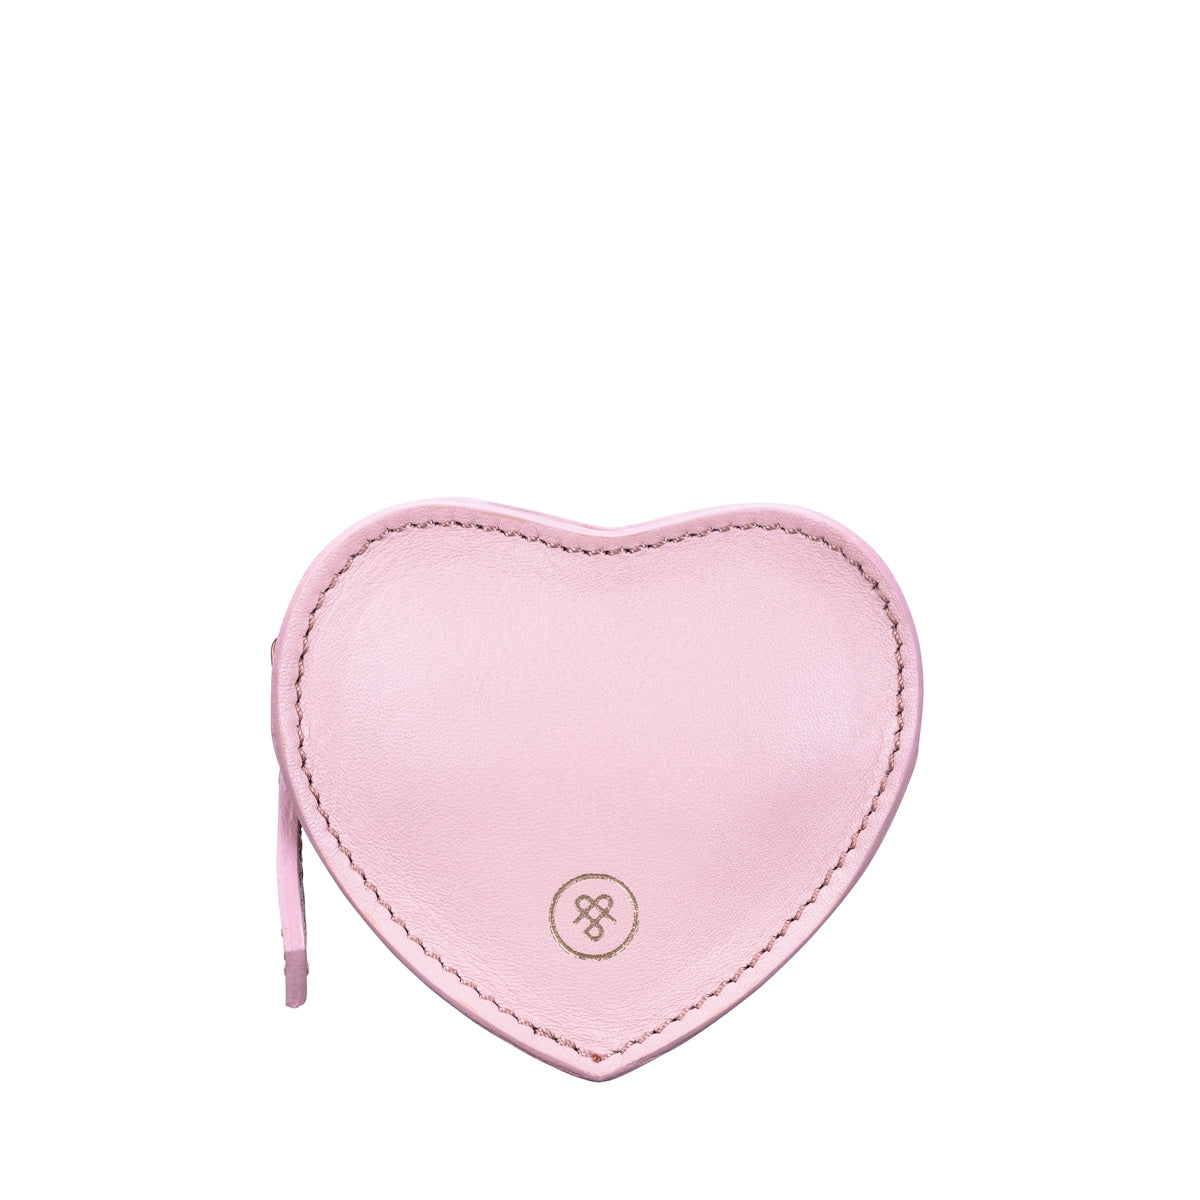 Image 1 of the 'Mirabella' Heart Shaped Pink Coin Purse